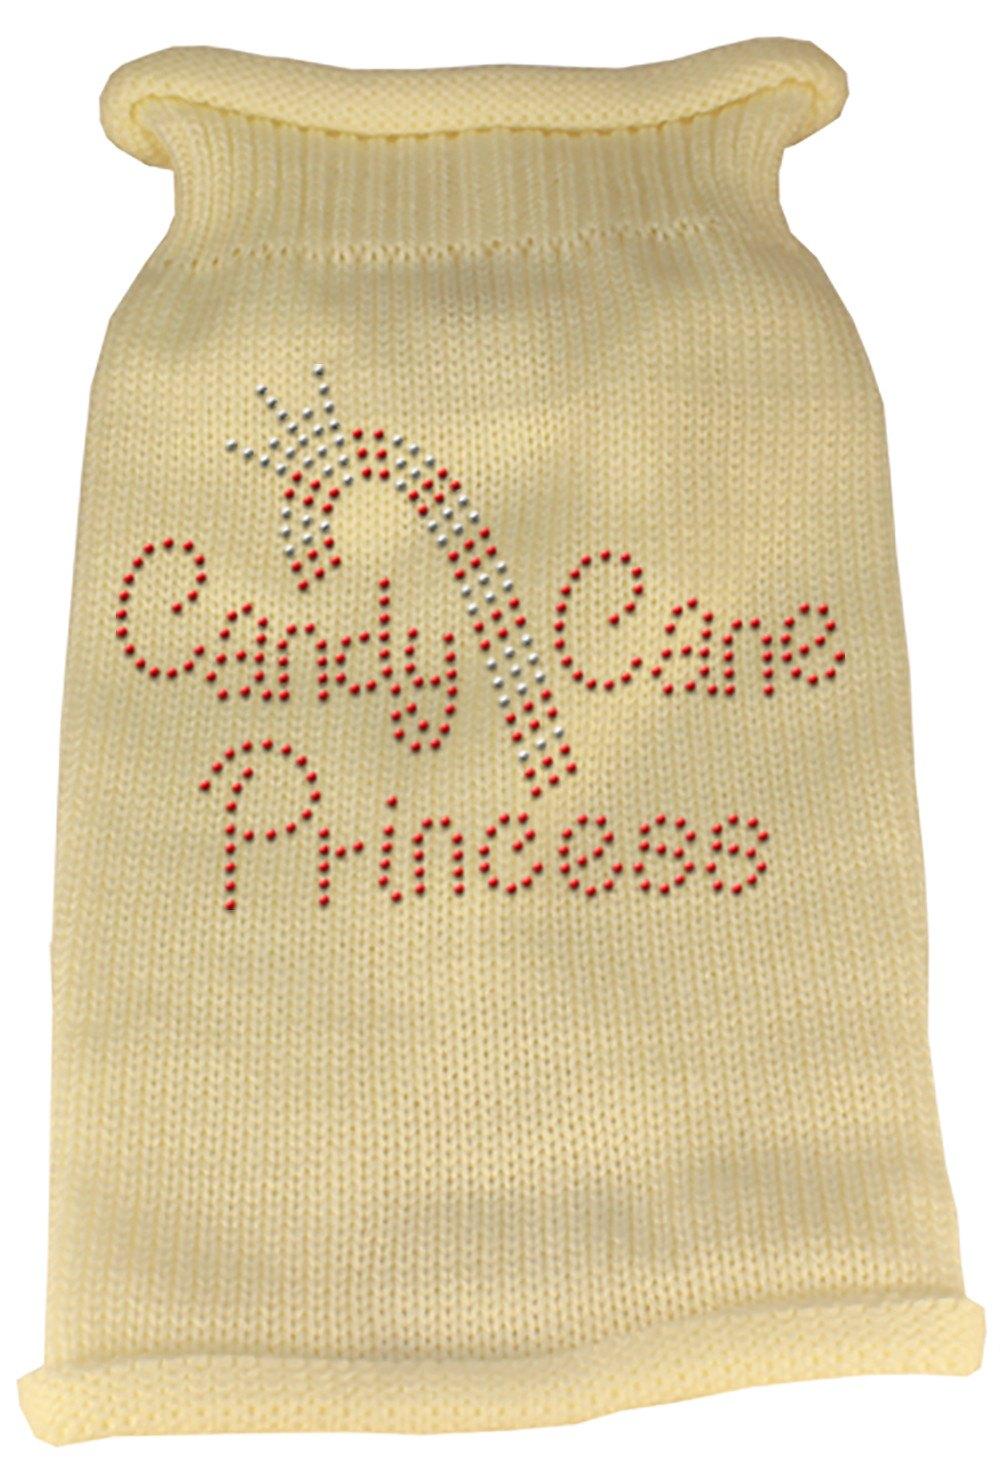 Mirage - Candy Cane Knit Pet Sweater - Cream